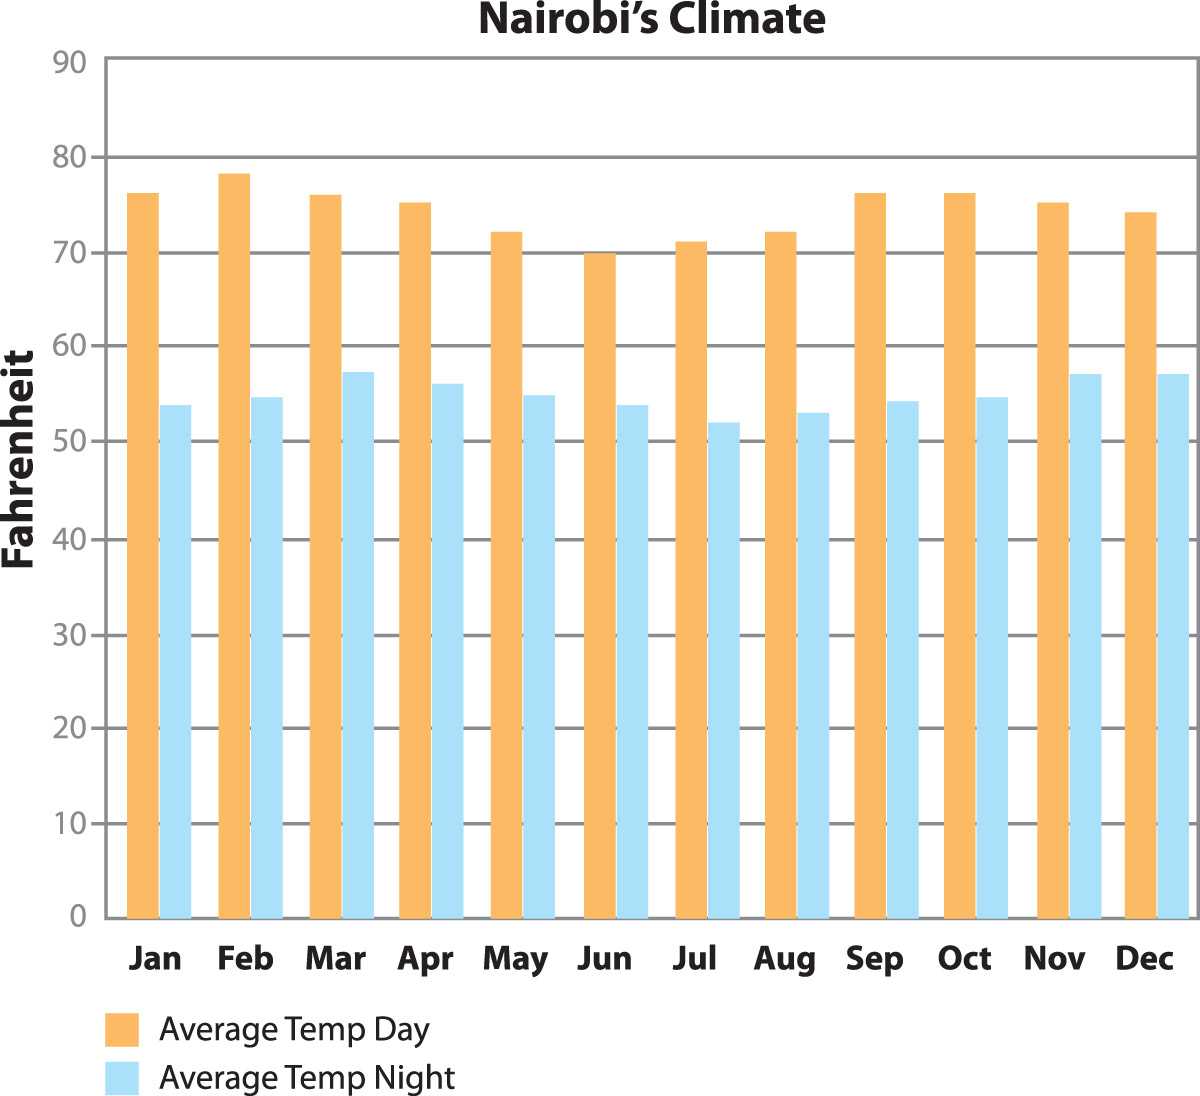 the kenyan climate It is important to evaluate how climate has varied and changed in the past the monthly mean historical rainfall and temperature data can be mapped to show the baseline climate and seasonality by month, for specific years, and for rainfall and temperature.